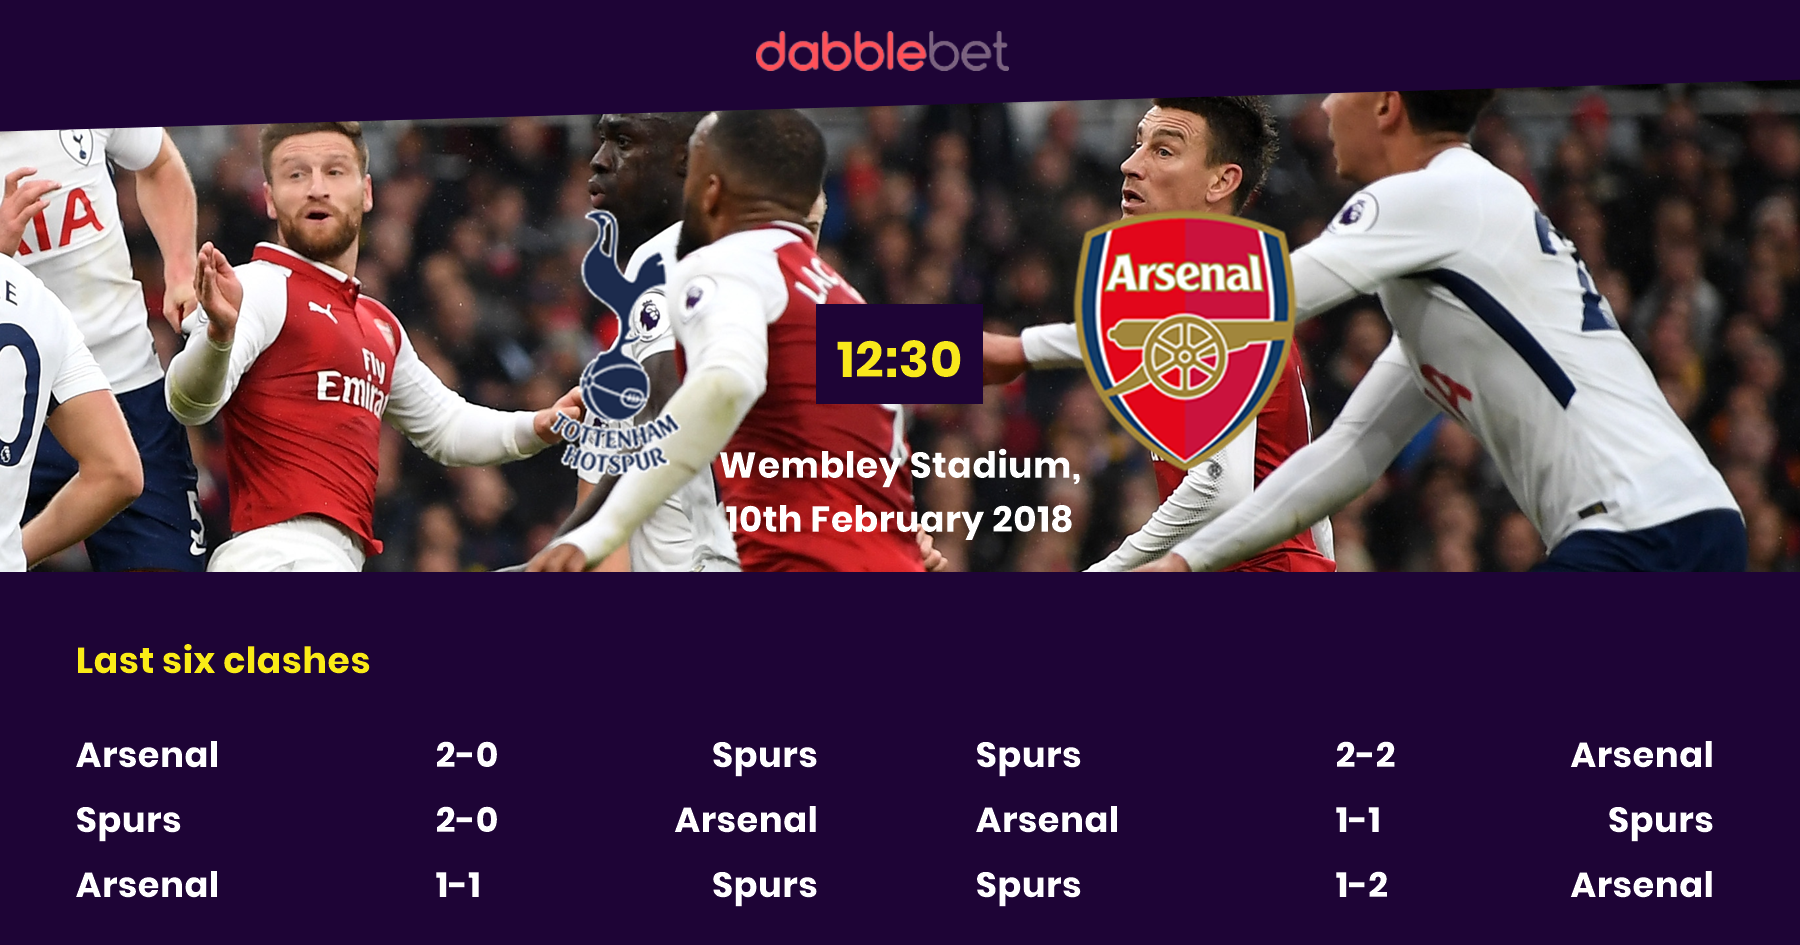 Spurs Arsenal graphic